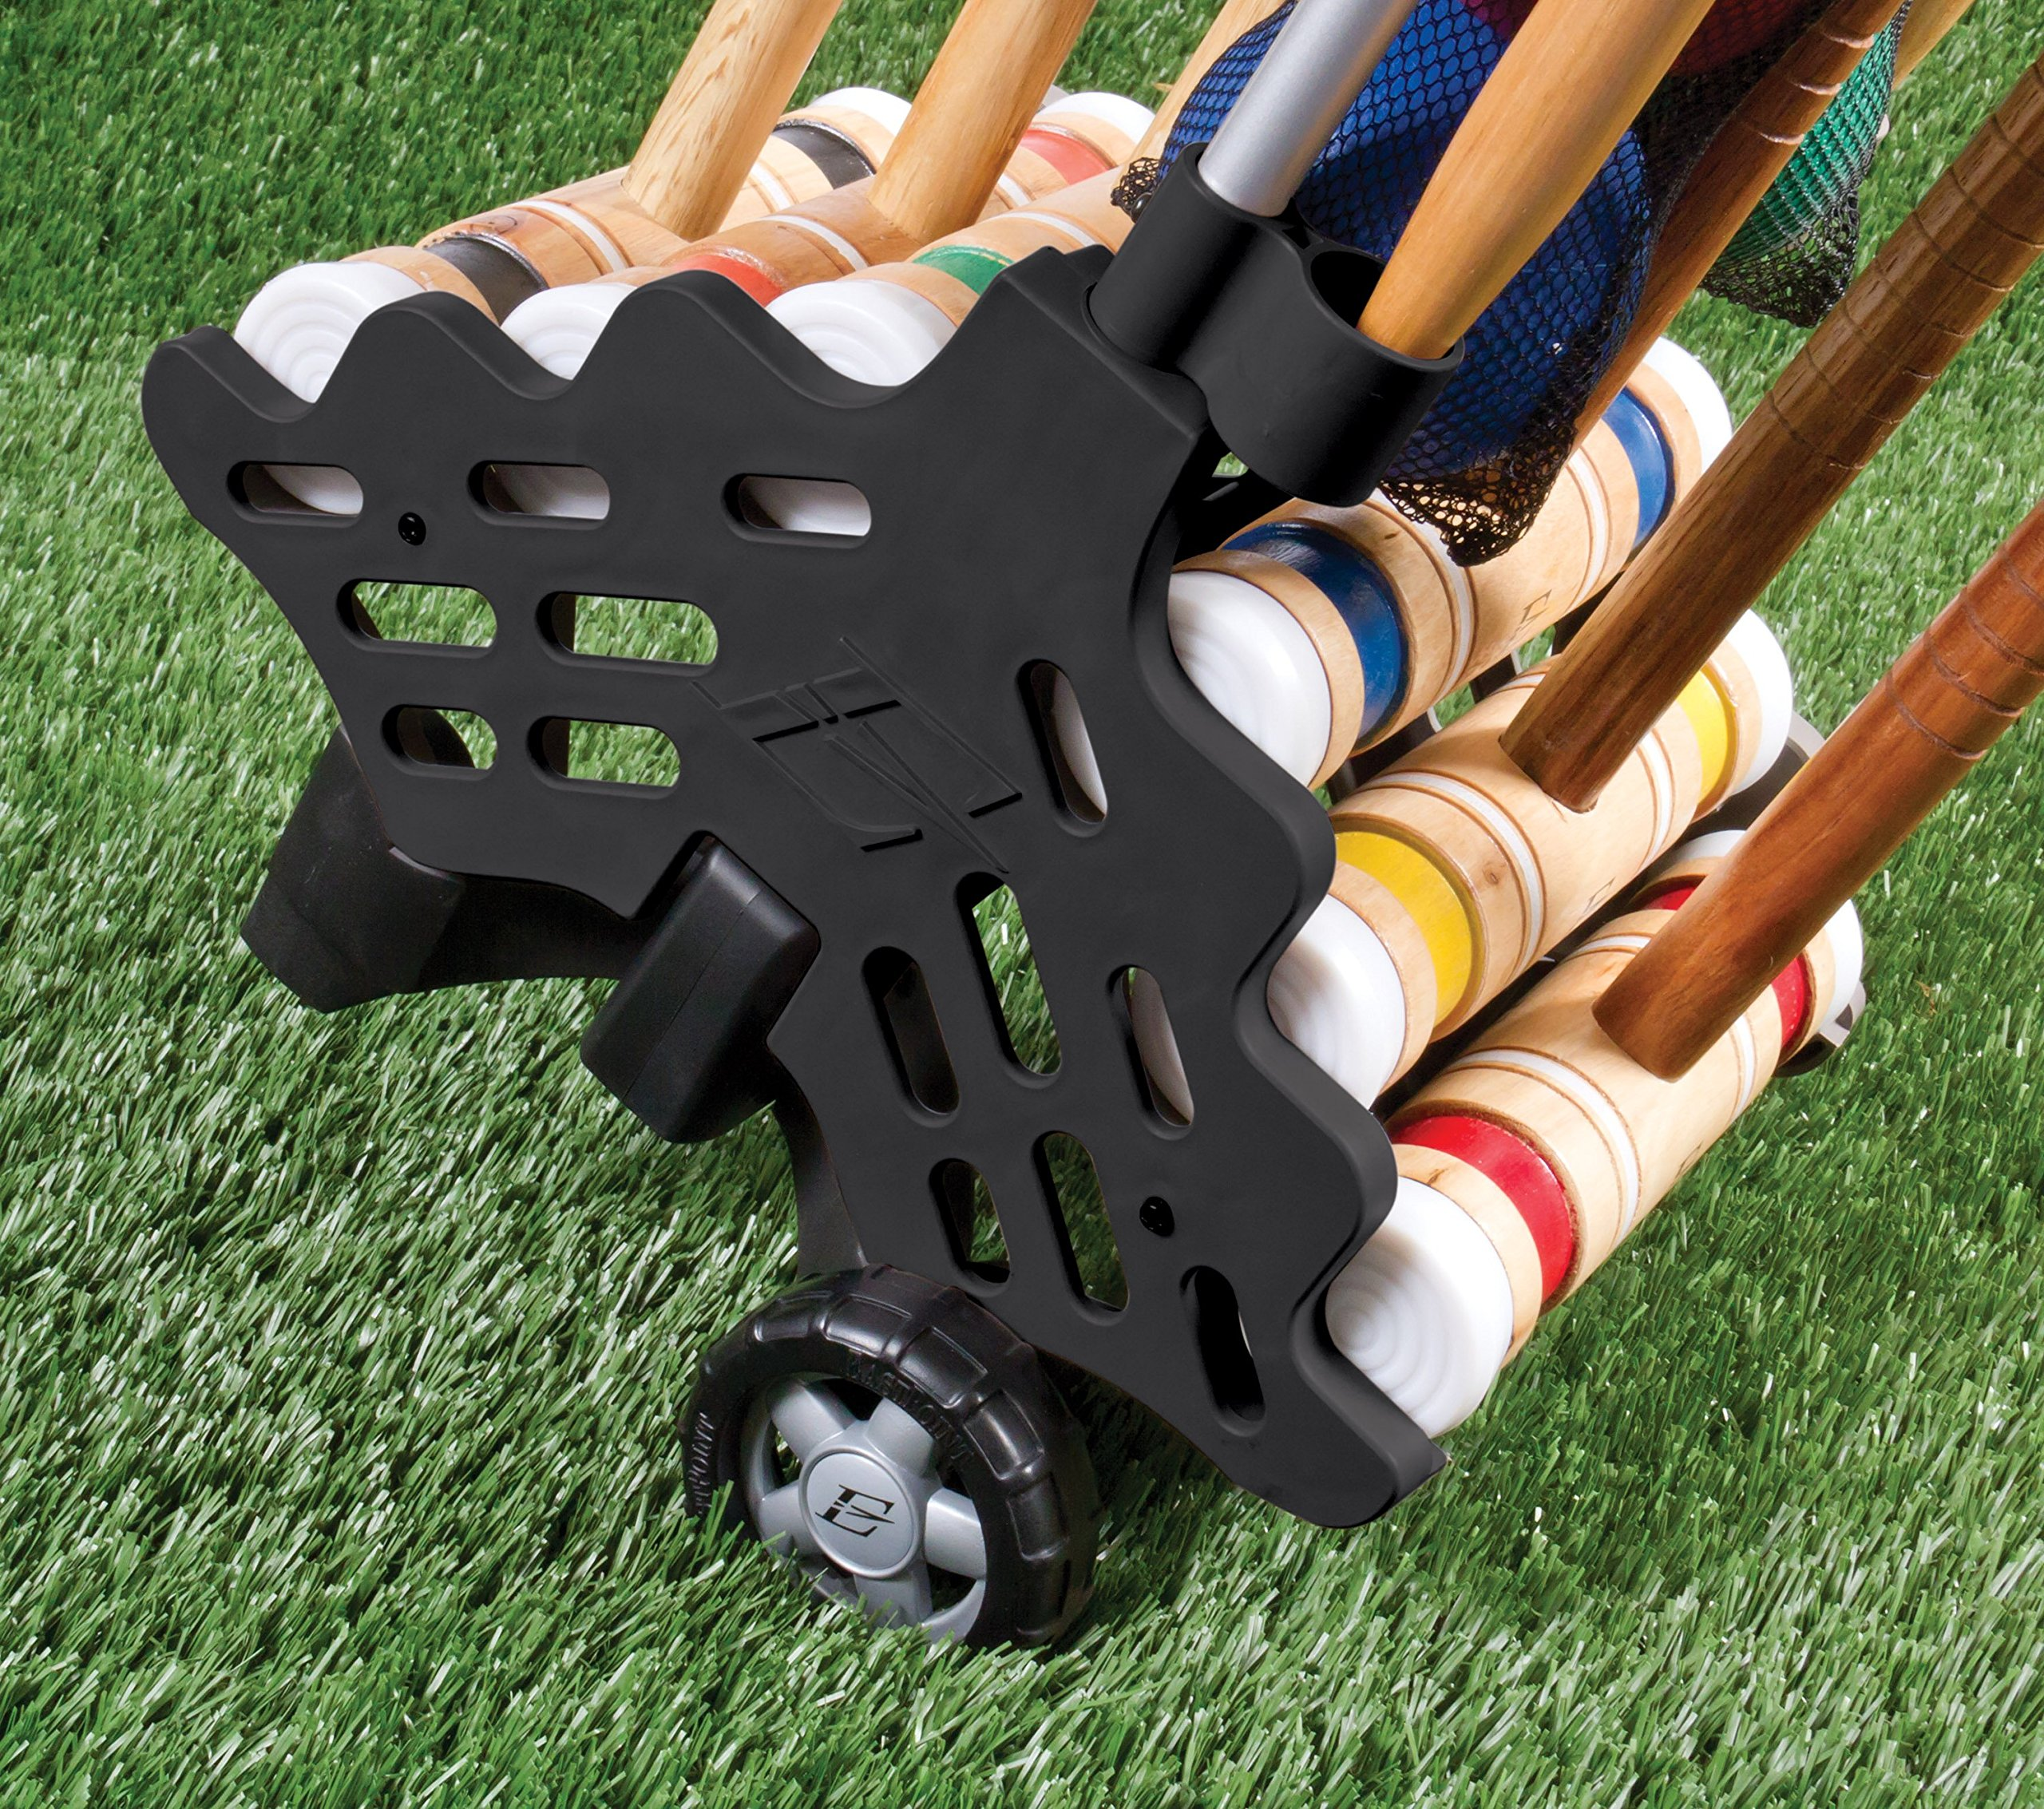 EastPoint Sports 6-Player Croquet Set with Caddy by EastPoint Sports (Image #7)